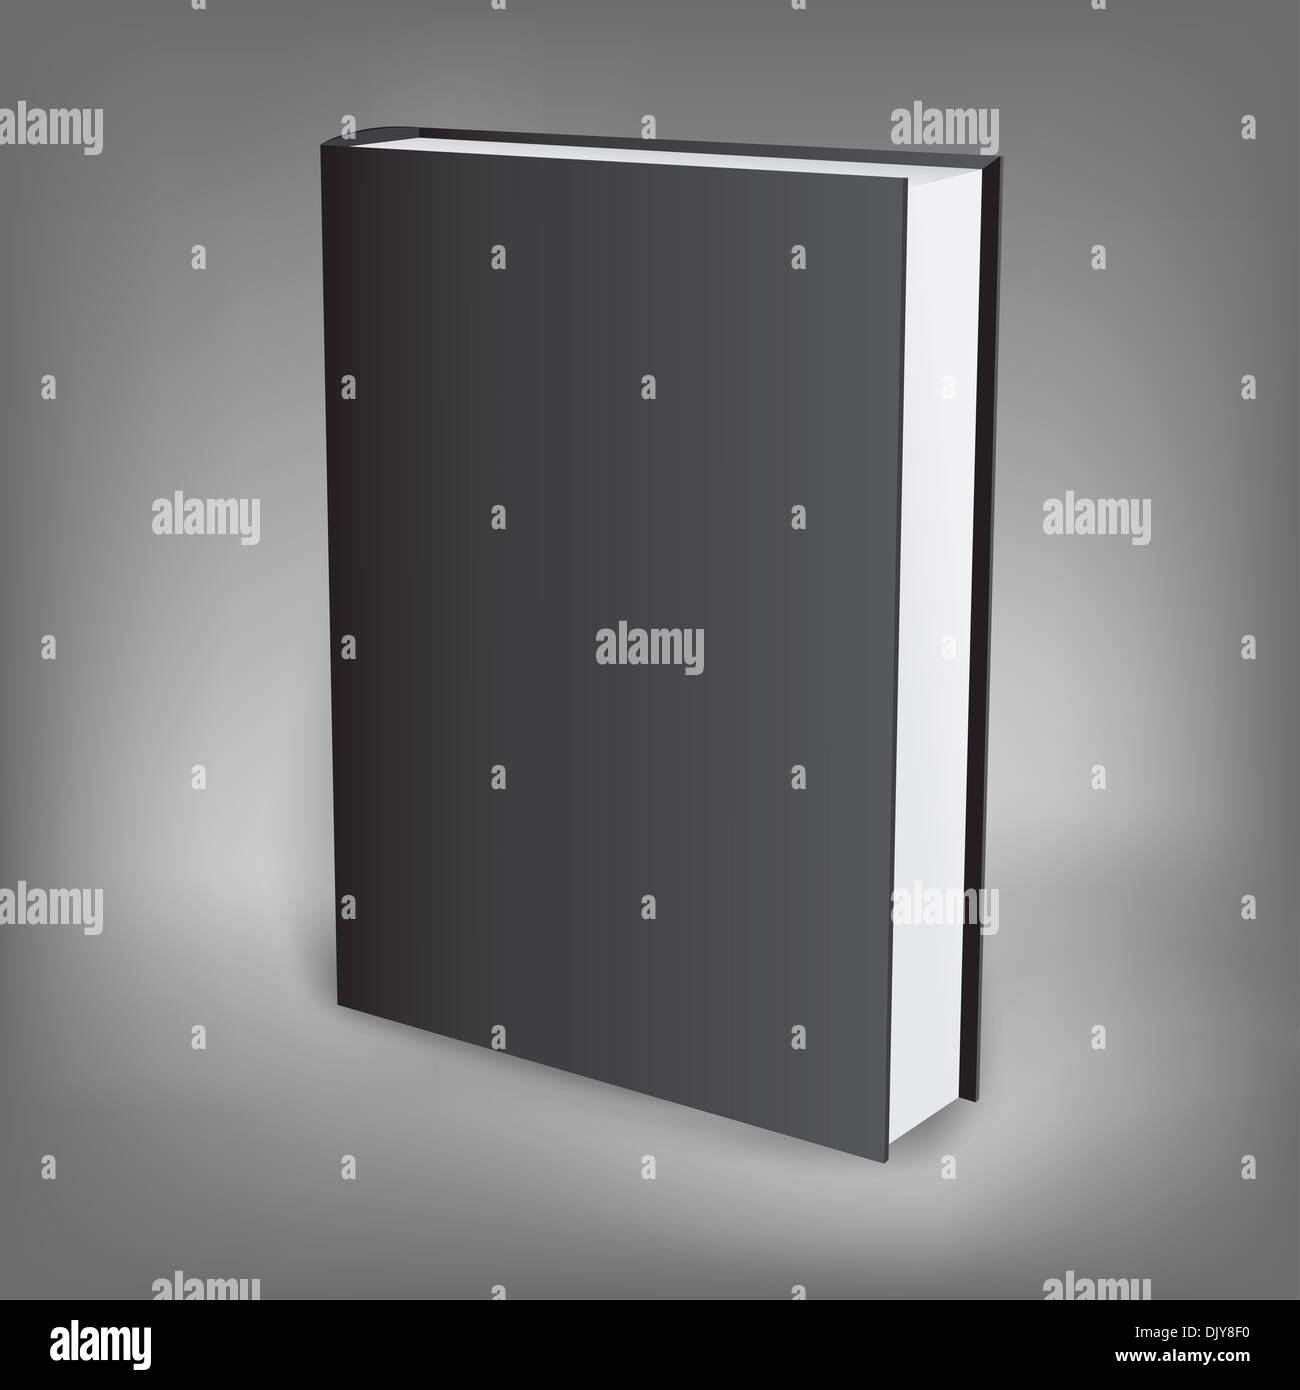 The black presentation book isolated on the dark background